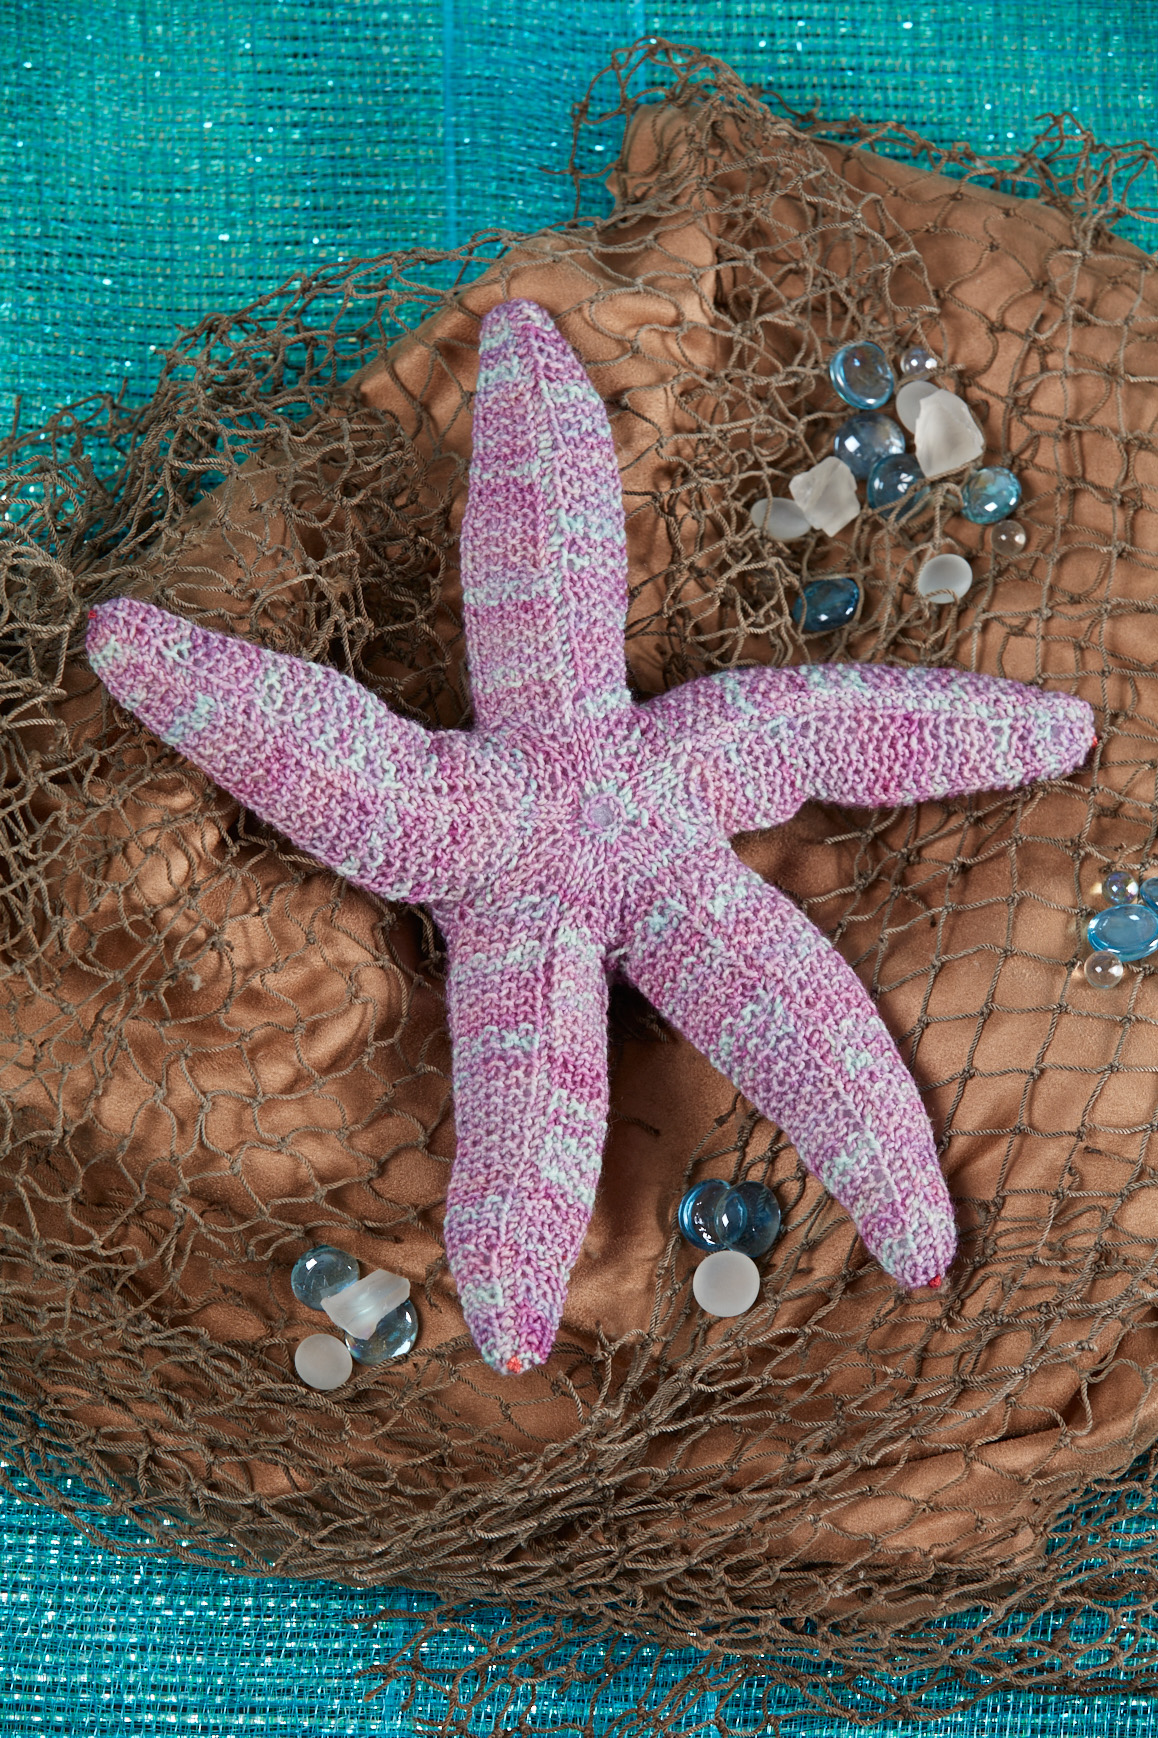 Serene Sea Star knitting pattern from Love of Knitting Toys by Joan Rowe